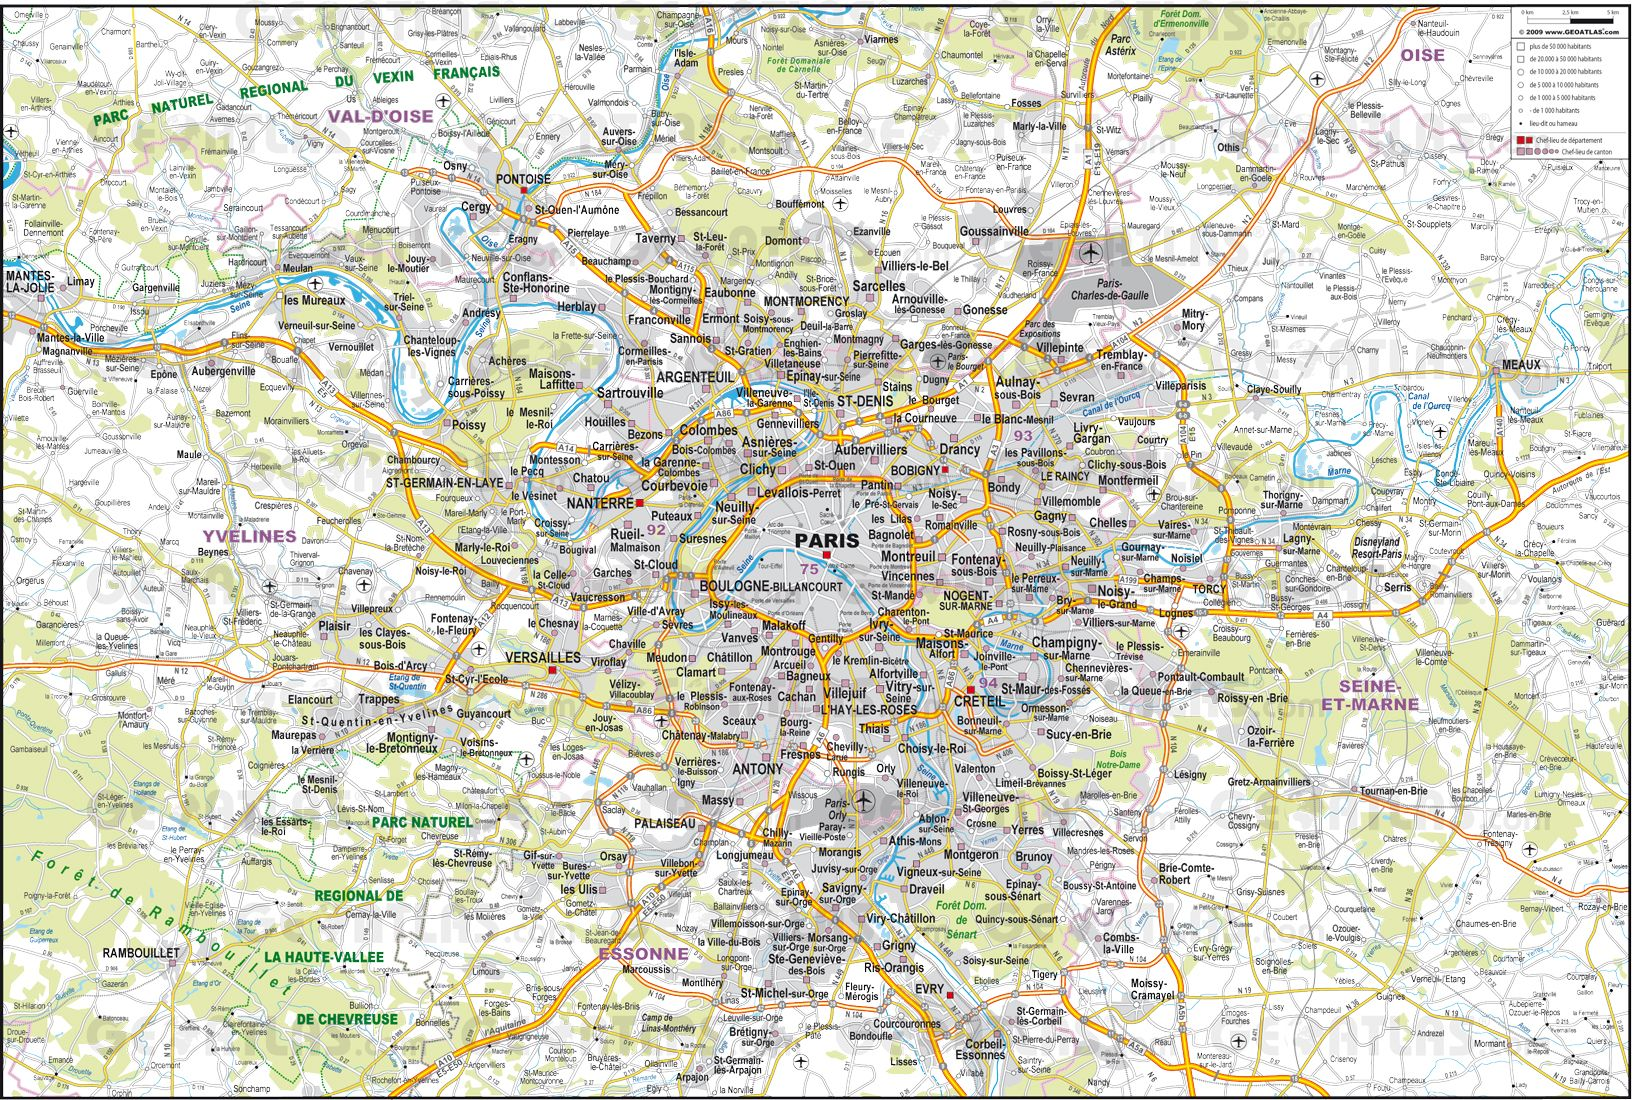 Detailed Map Of Paris France Map Of The Environs Of Paris City - Large map of paris france